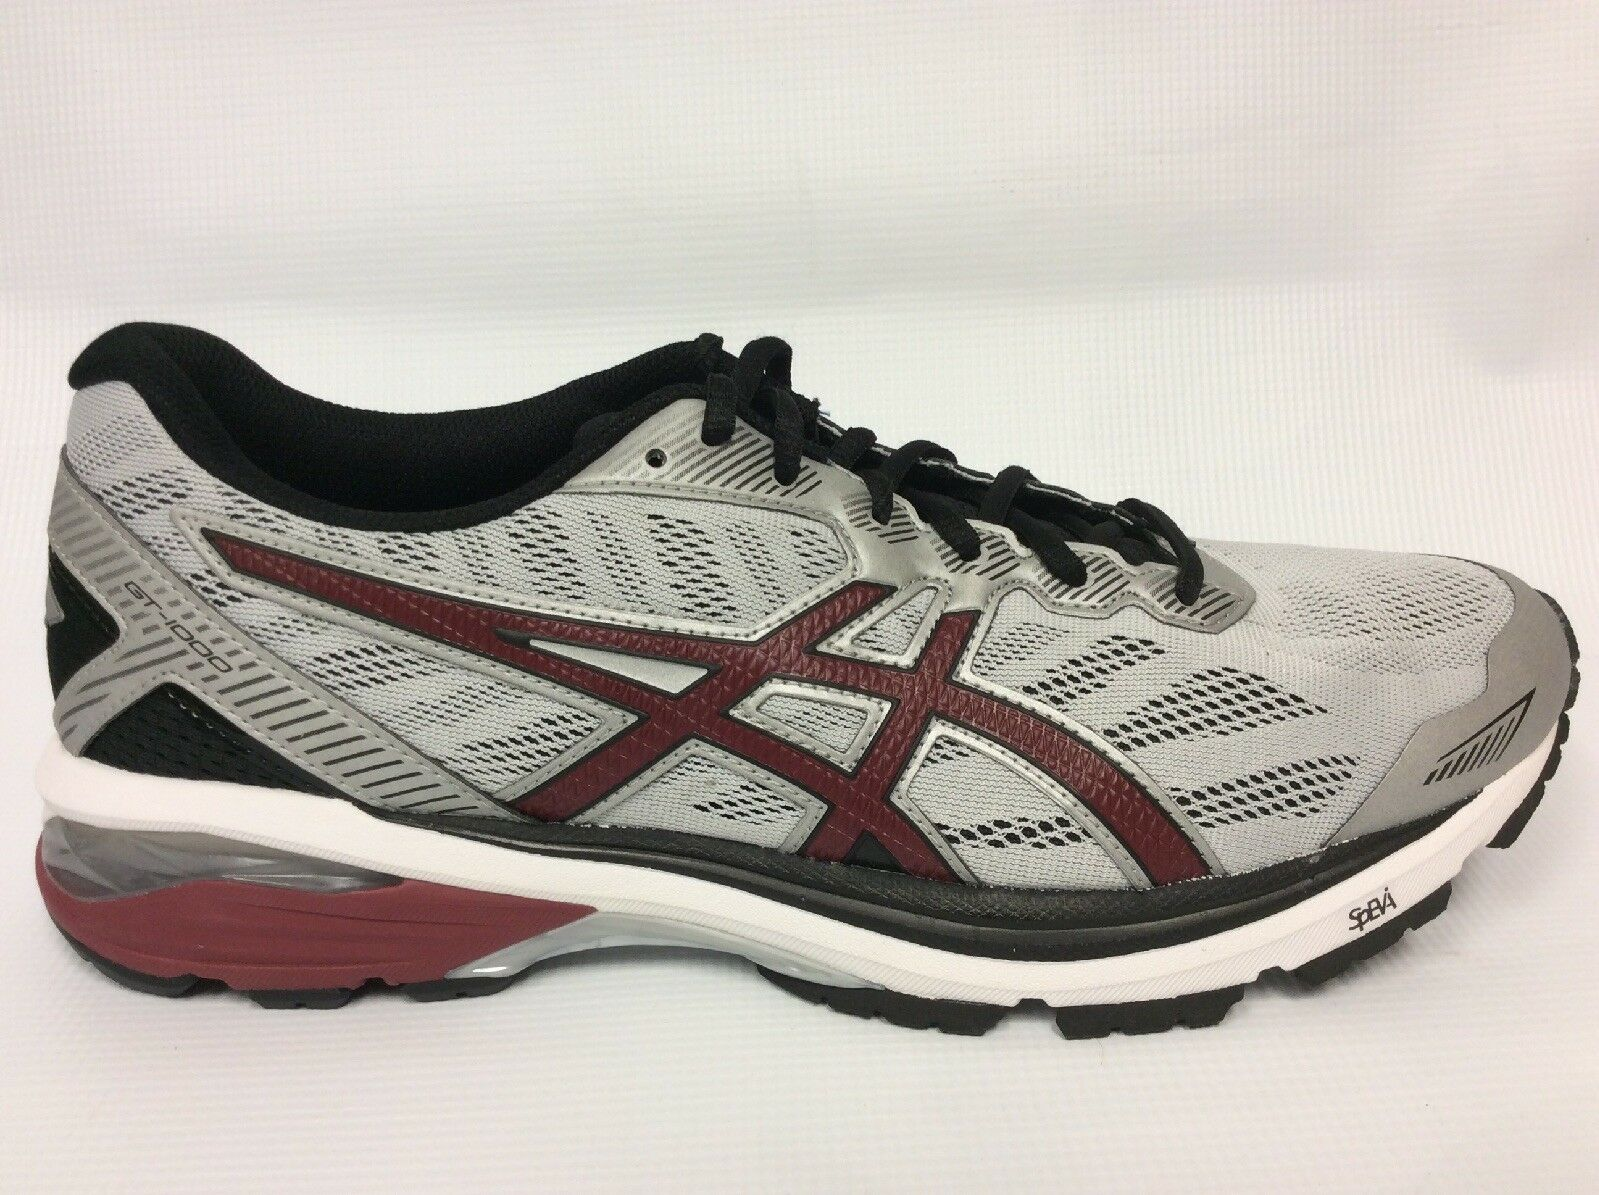 Asics GT-1000 5 Mens Running shoes US Size 8 D T6A3N 9626 Grey Brand New